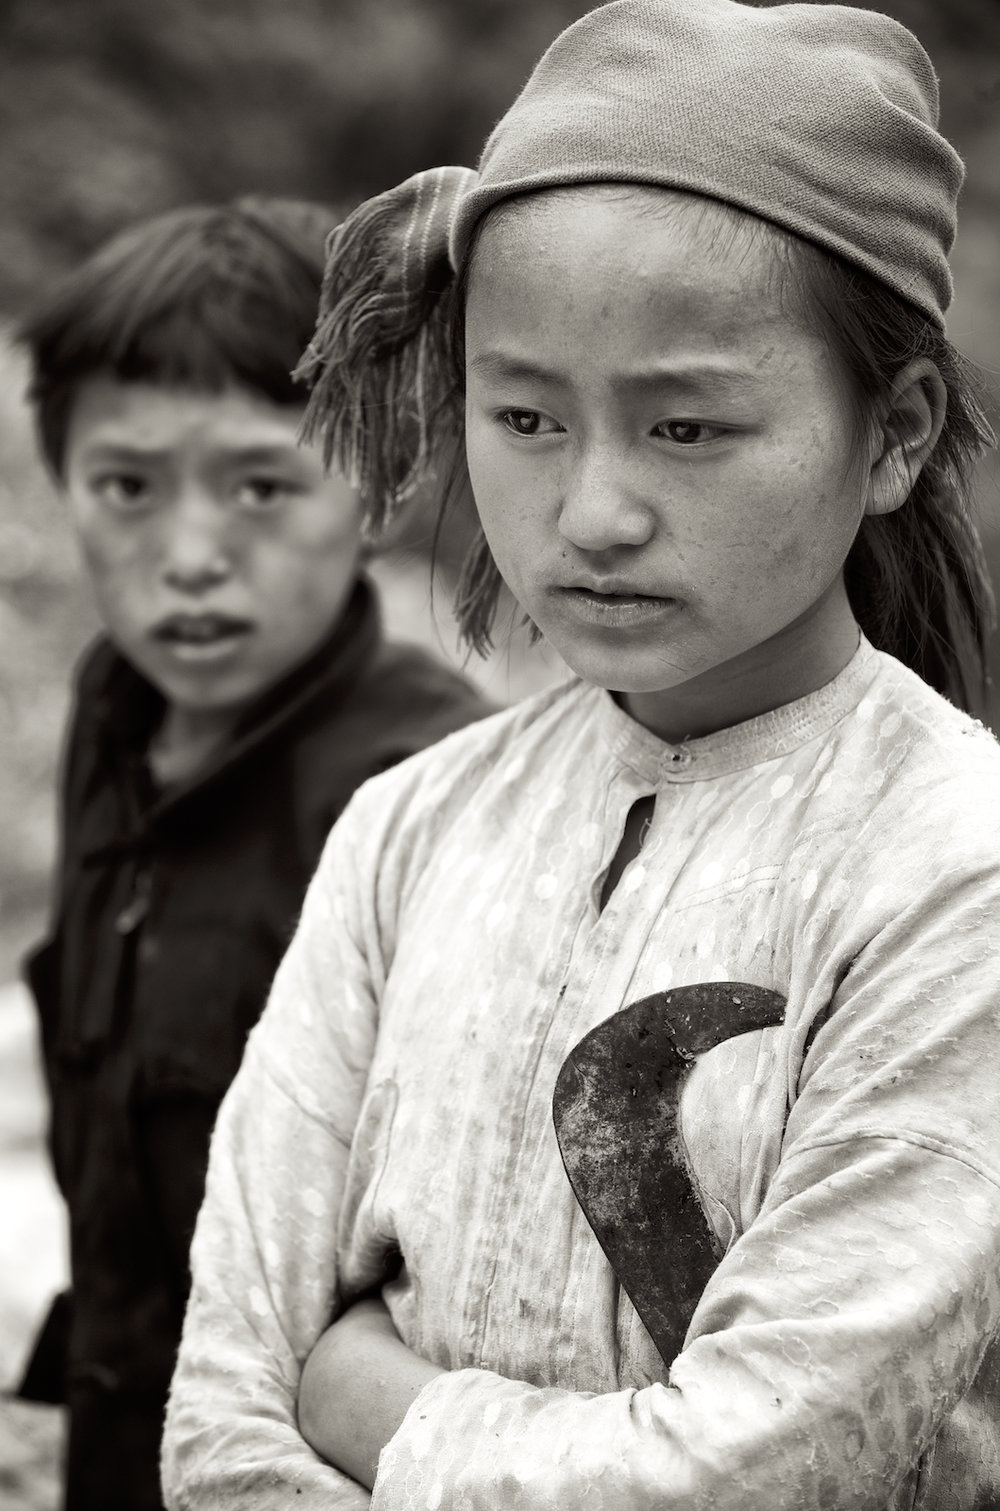 young medicine gatherers in northeastern Vietnam. Image by New Orleans based travel photographer, Marc Pagani - marcpagani.com